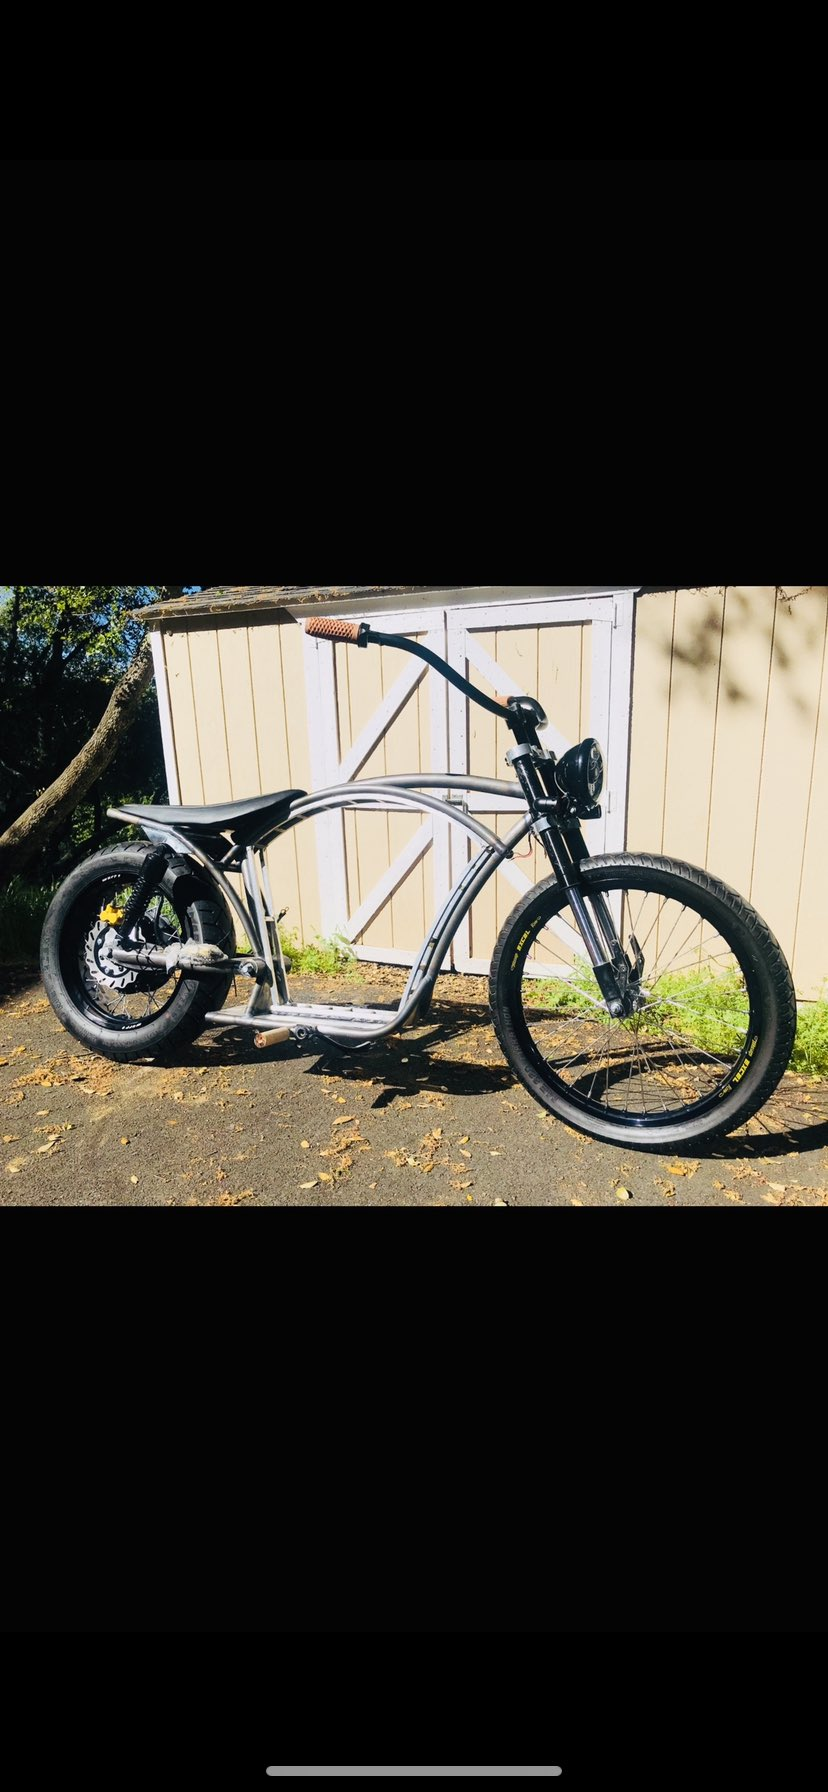 beachcruiser-electricmotorcycle-madeincalifornia-httpst-cojolfwwqqwi